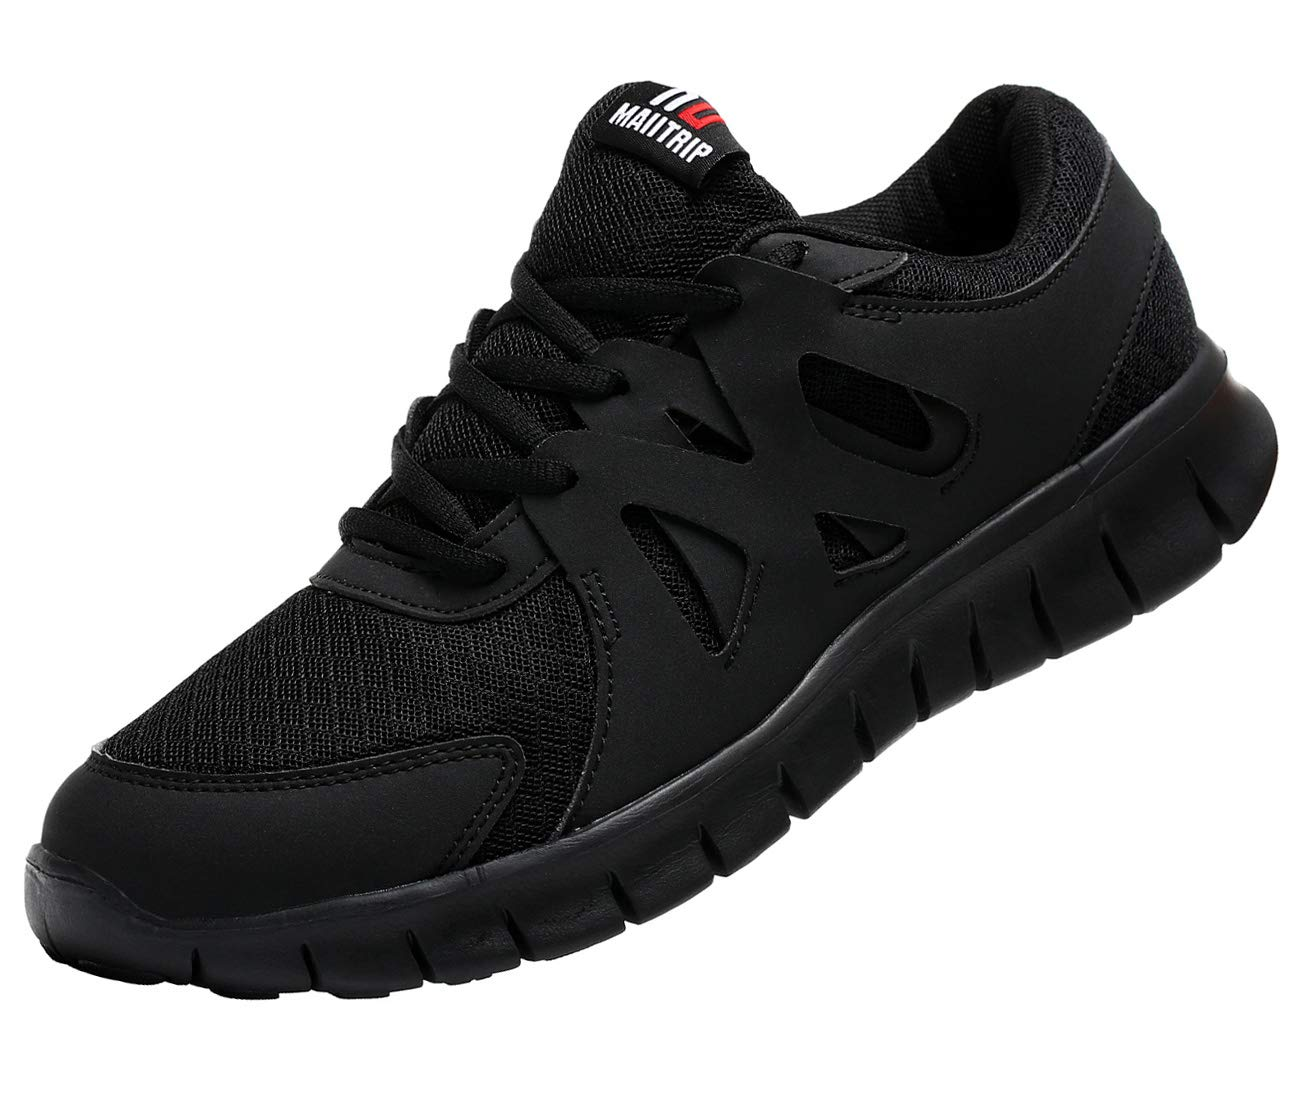 MAIITRIP Men's Running Shoes, Lightweight Non-Slip Gym Athletic Sneakers, Breathable Sport Causal Tennis Walking Shoes. All Black, Size 11